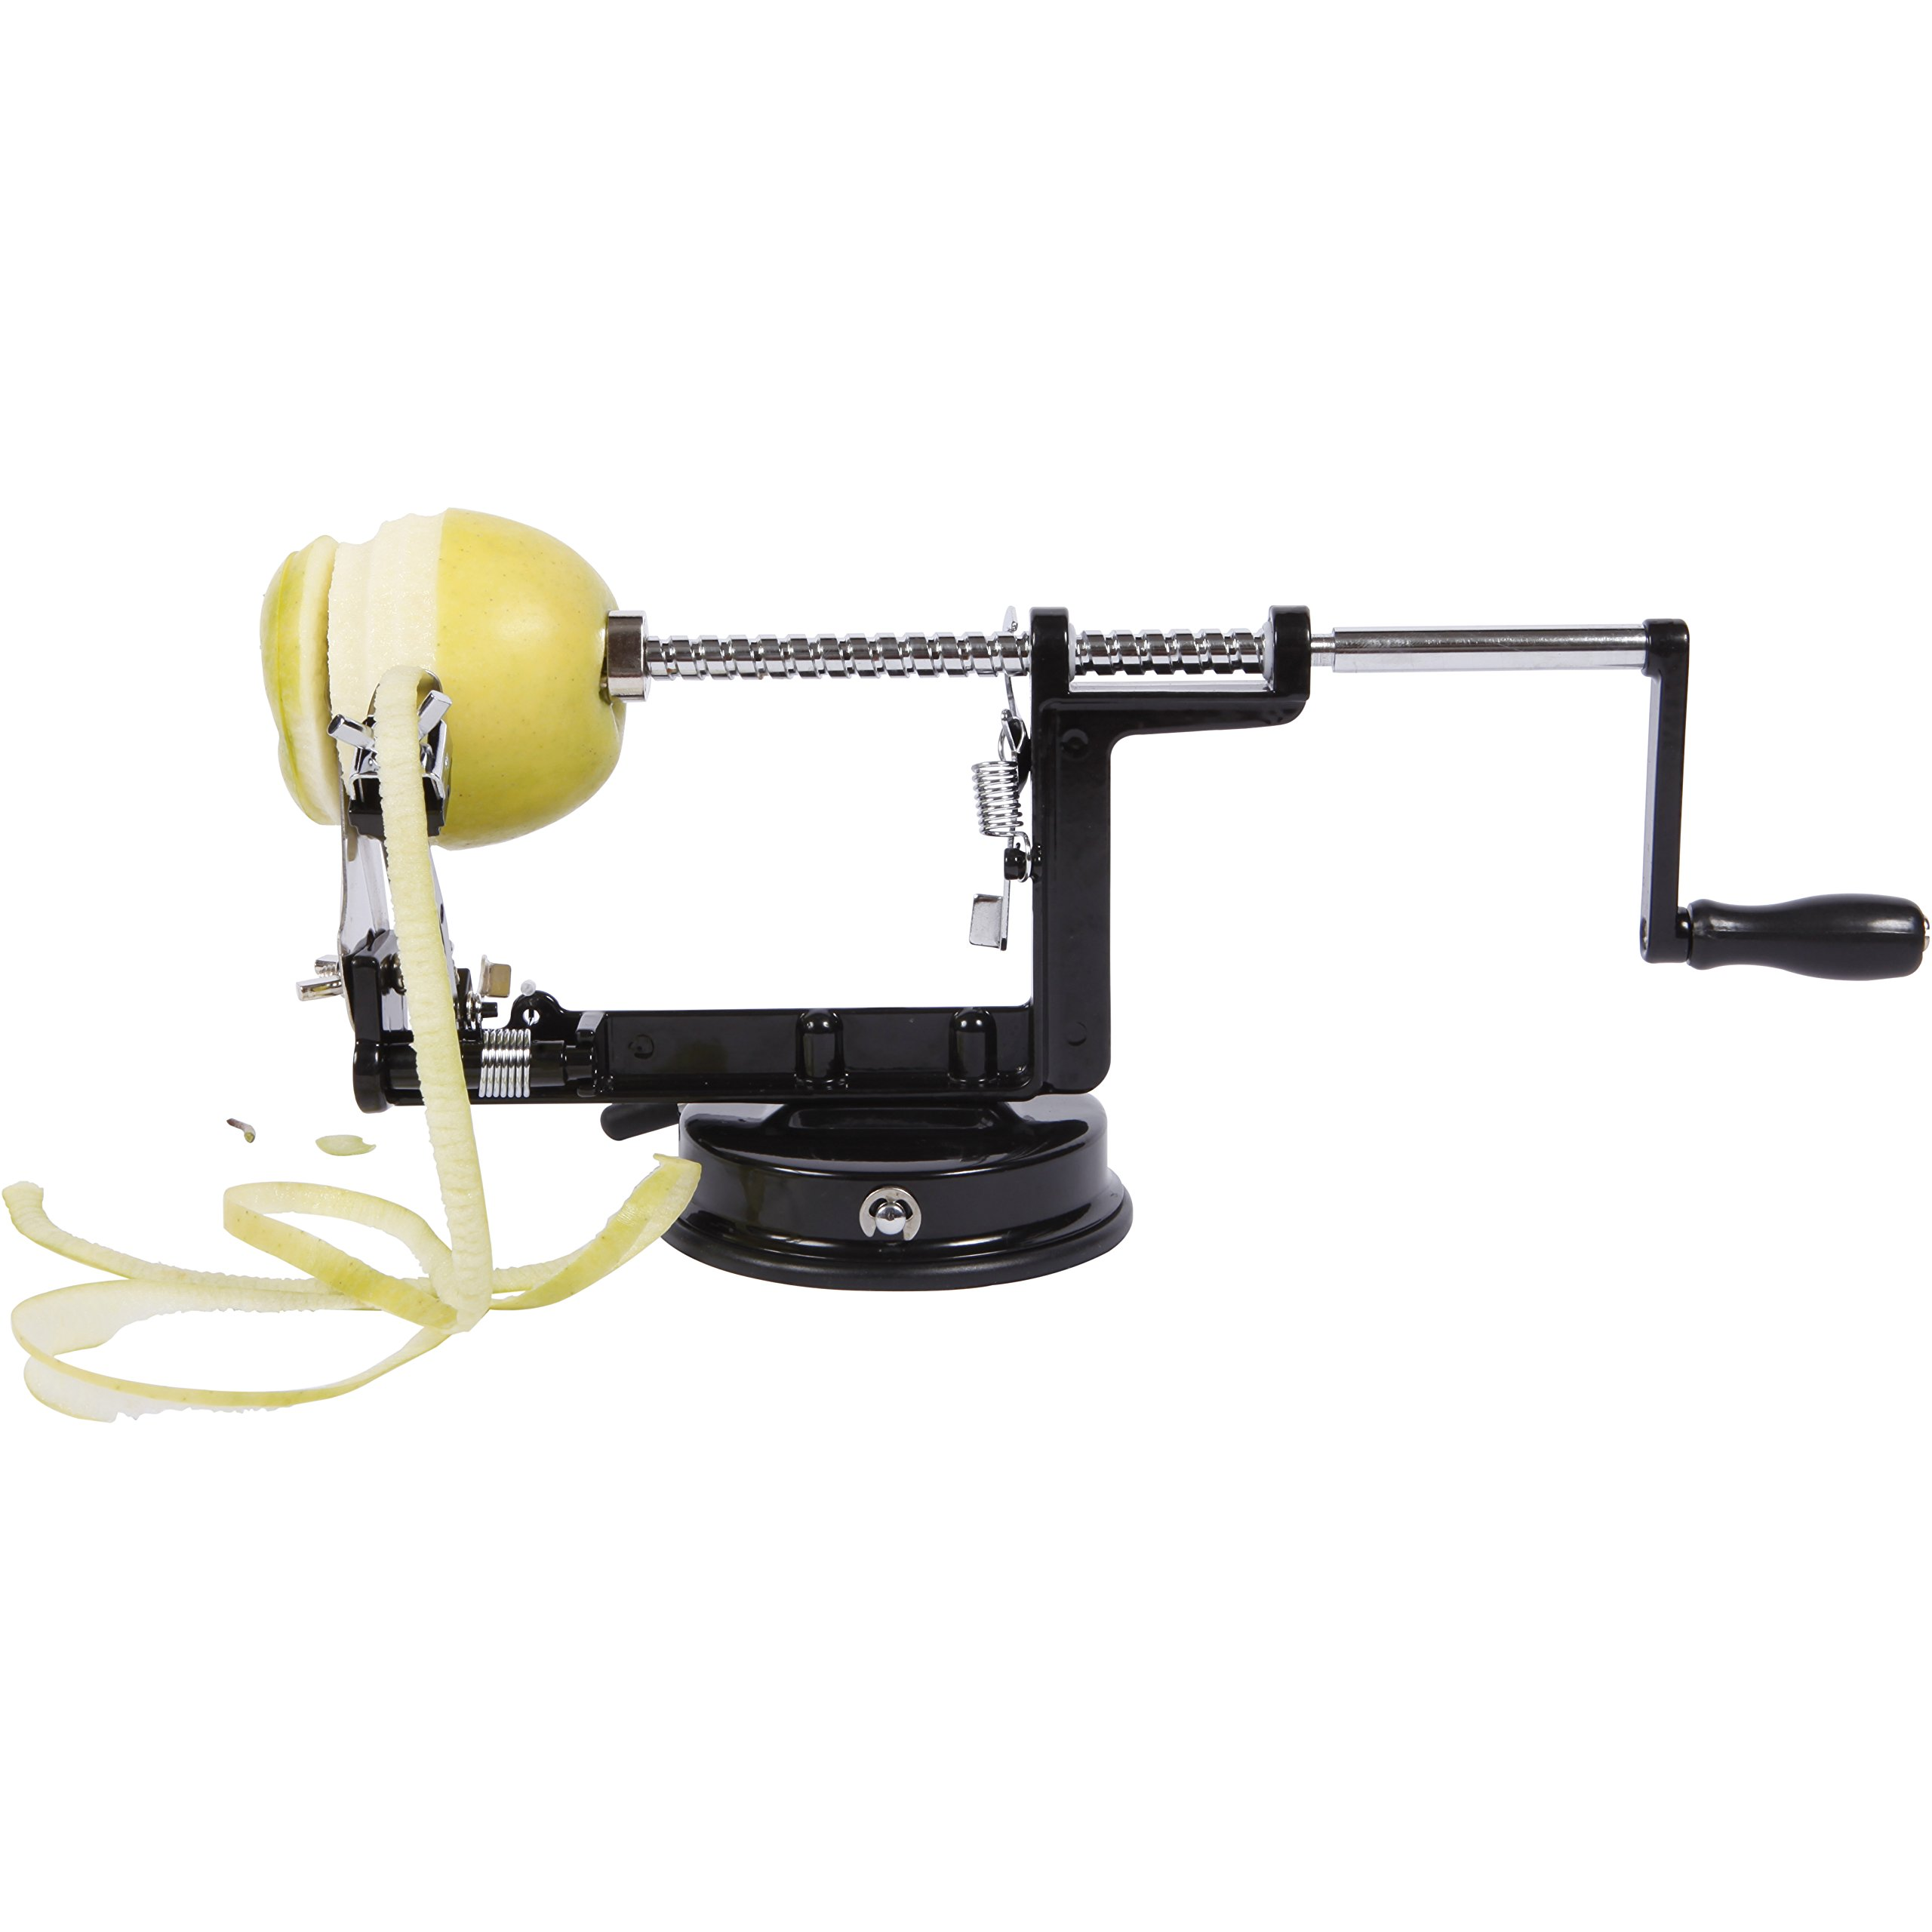 Precision Kitchenware - Stainless Steel Apple Peeler Corer and Slicer - Luxury Black Edition by Precision Kitchenware